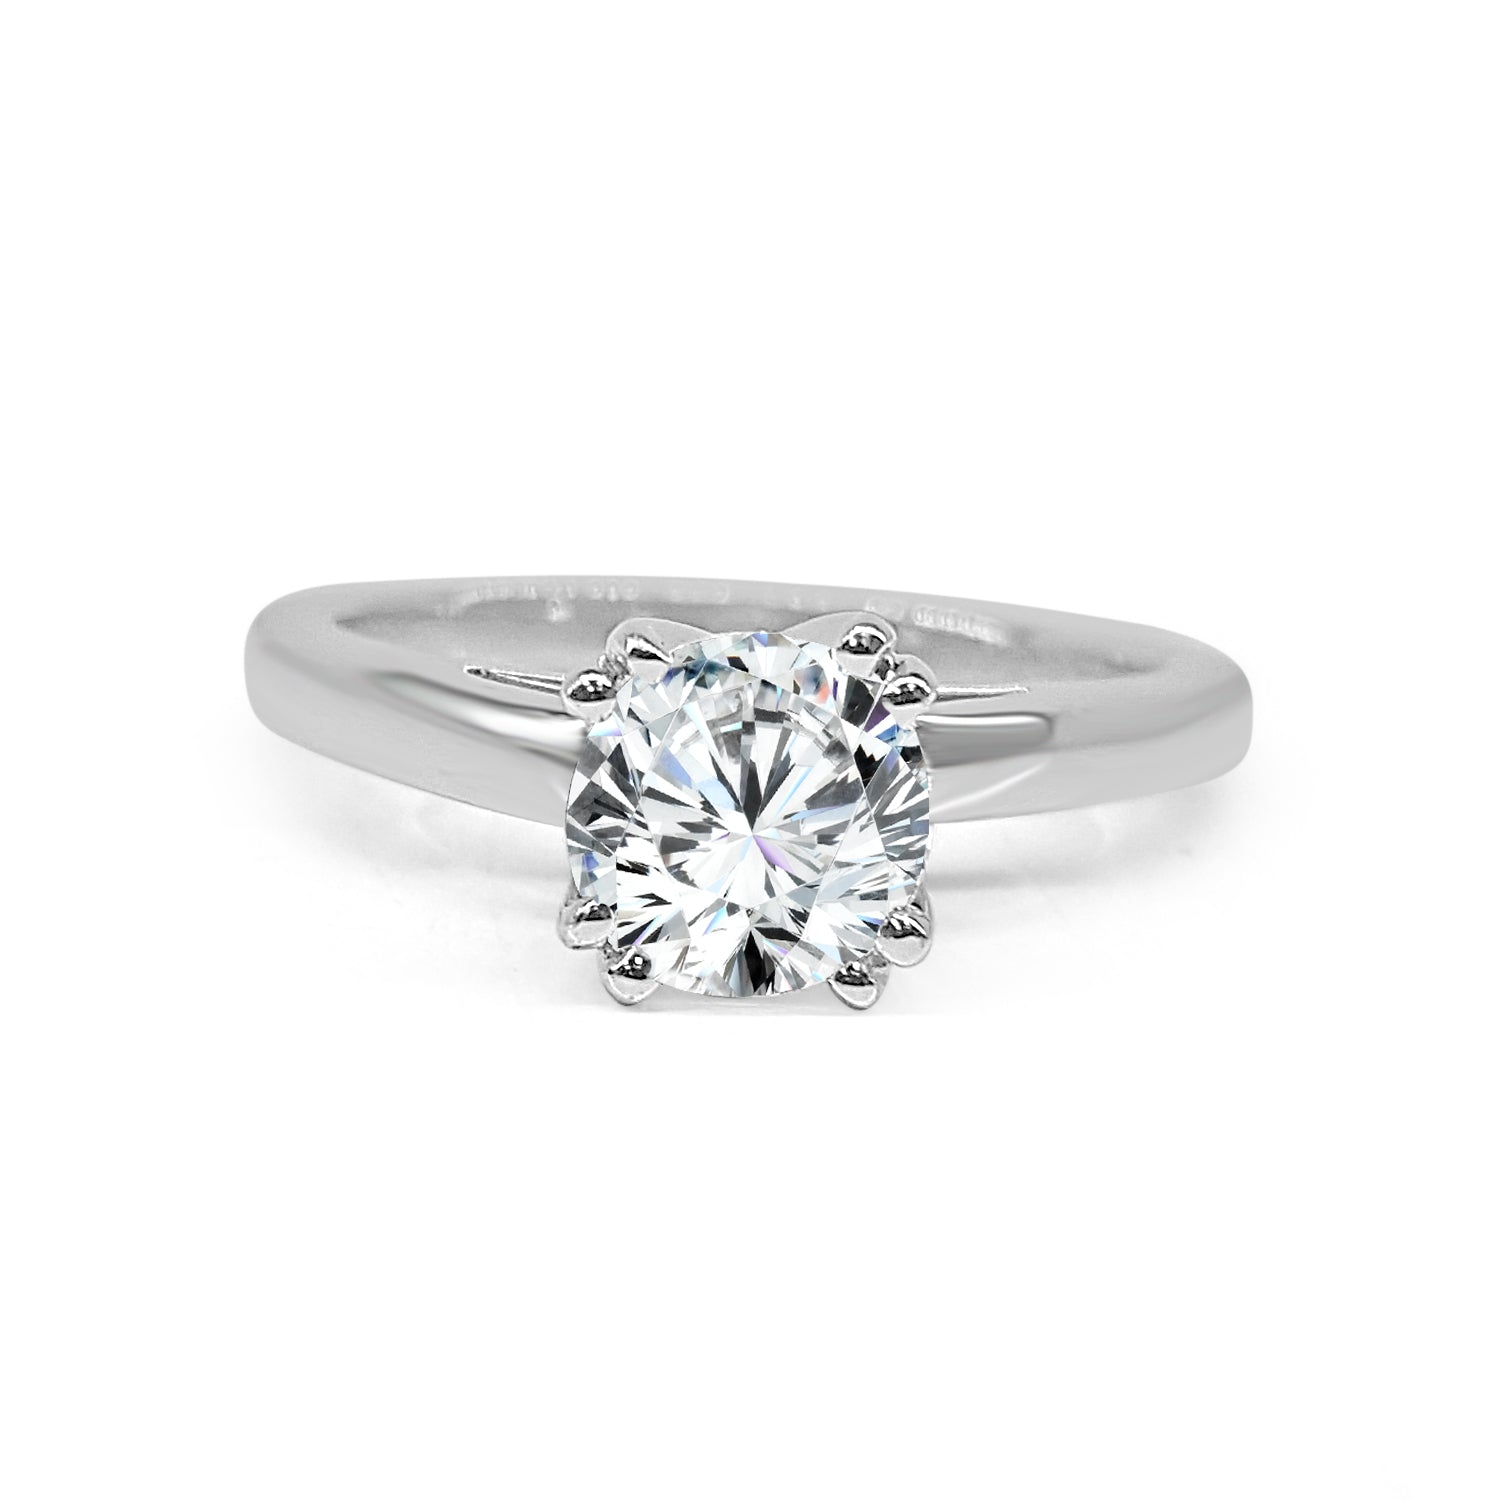 Double Prong Solitaire Mount